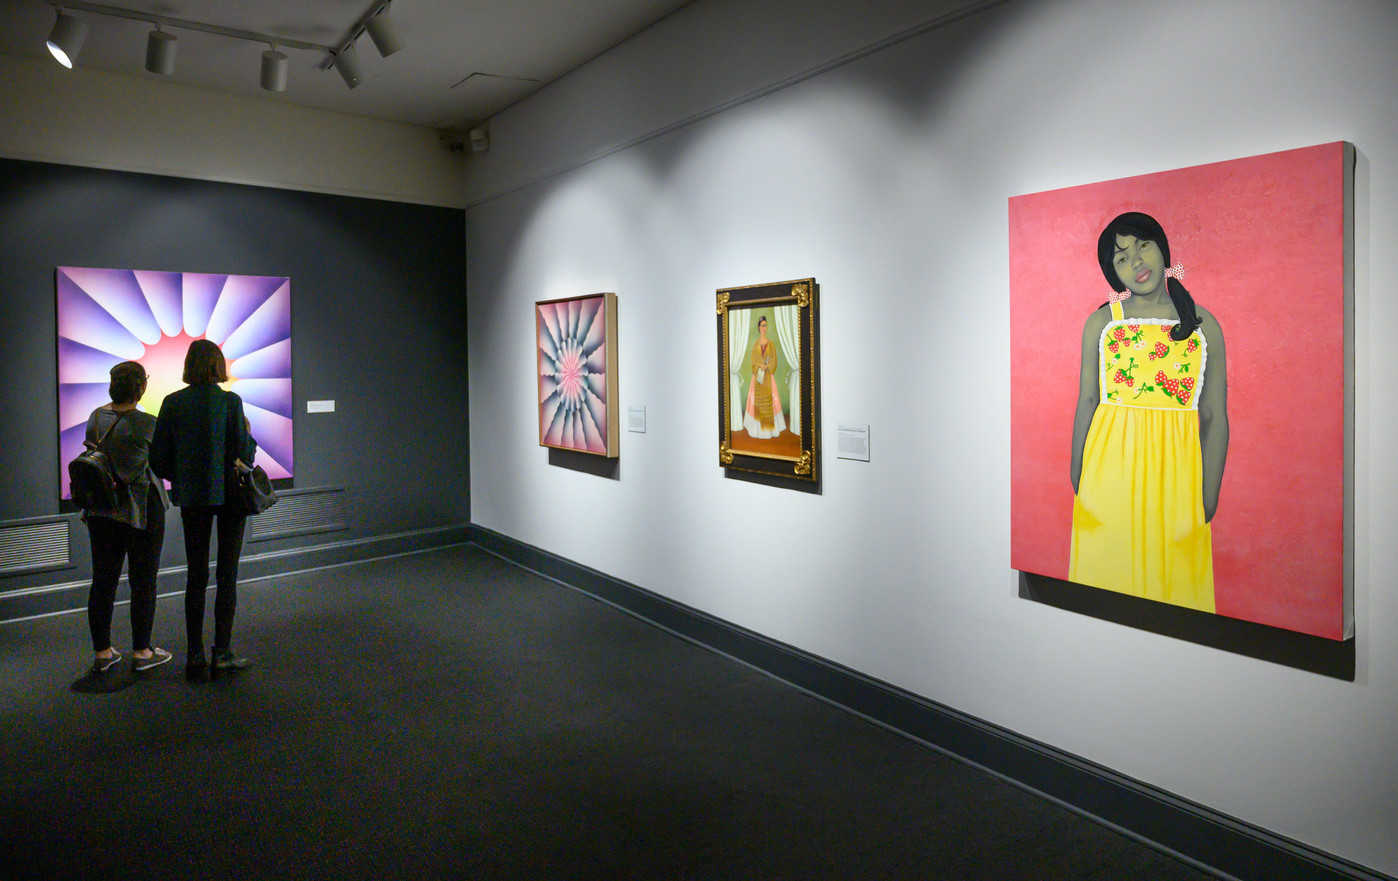 A partial view of an art gallery with four artworks on display, including a painted portrait of a young, pony-tailed medium-dark skinned girl in a yellow flowered dress against a pink background; a smaller portrait; and large abstract works with colorful shapes and gradients.